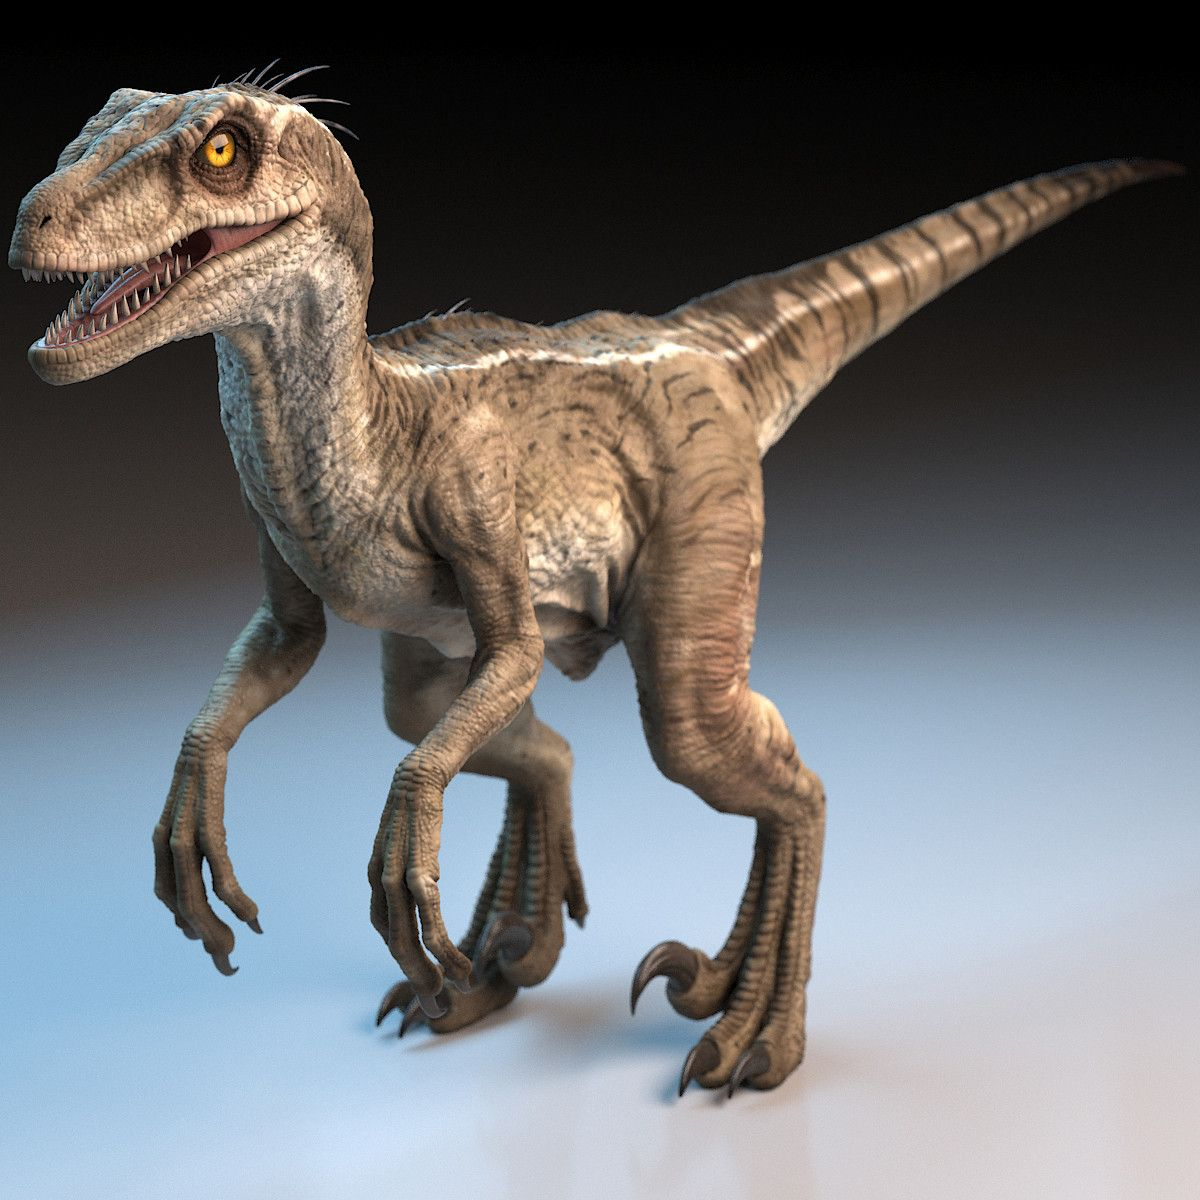 Raptor Dinosaur 3d Model Raptor Dinosaur Dinosaur Pictures Dinosaur Images